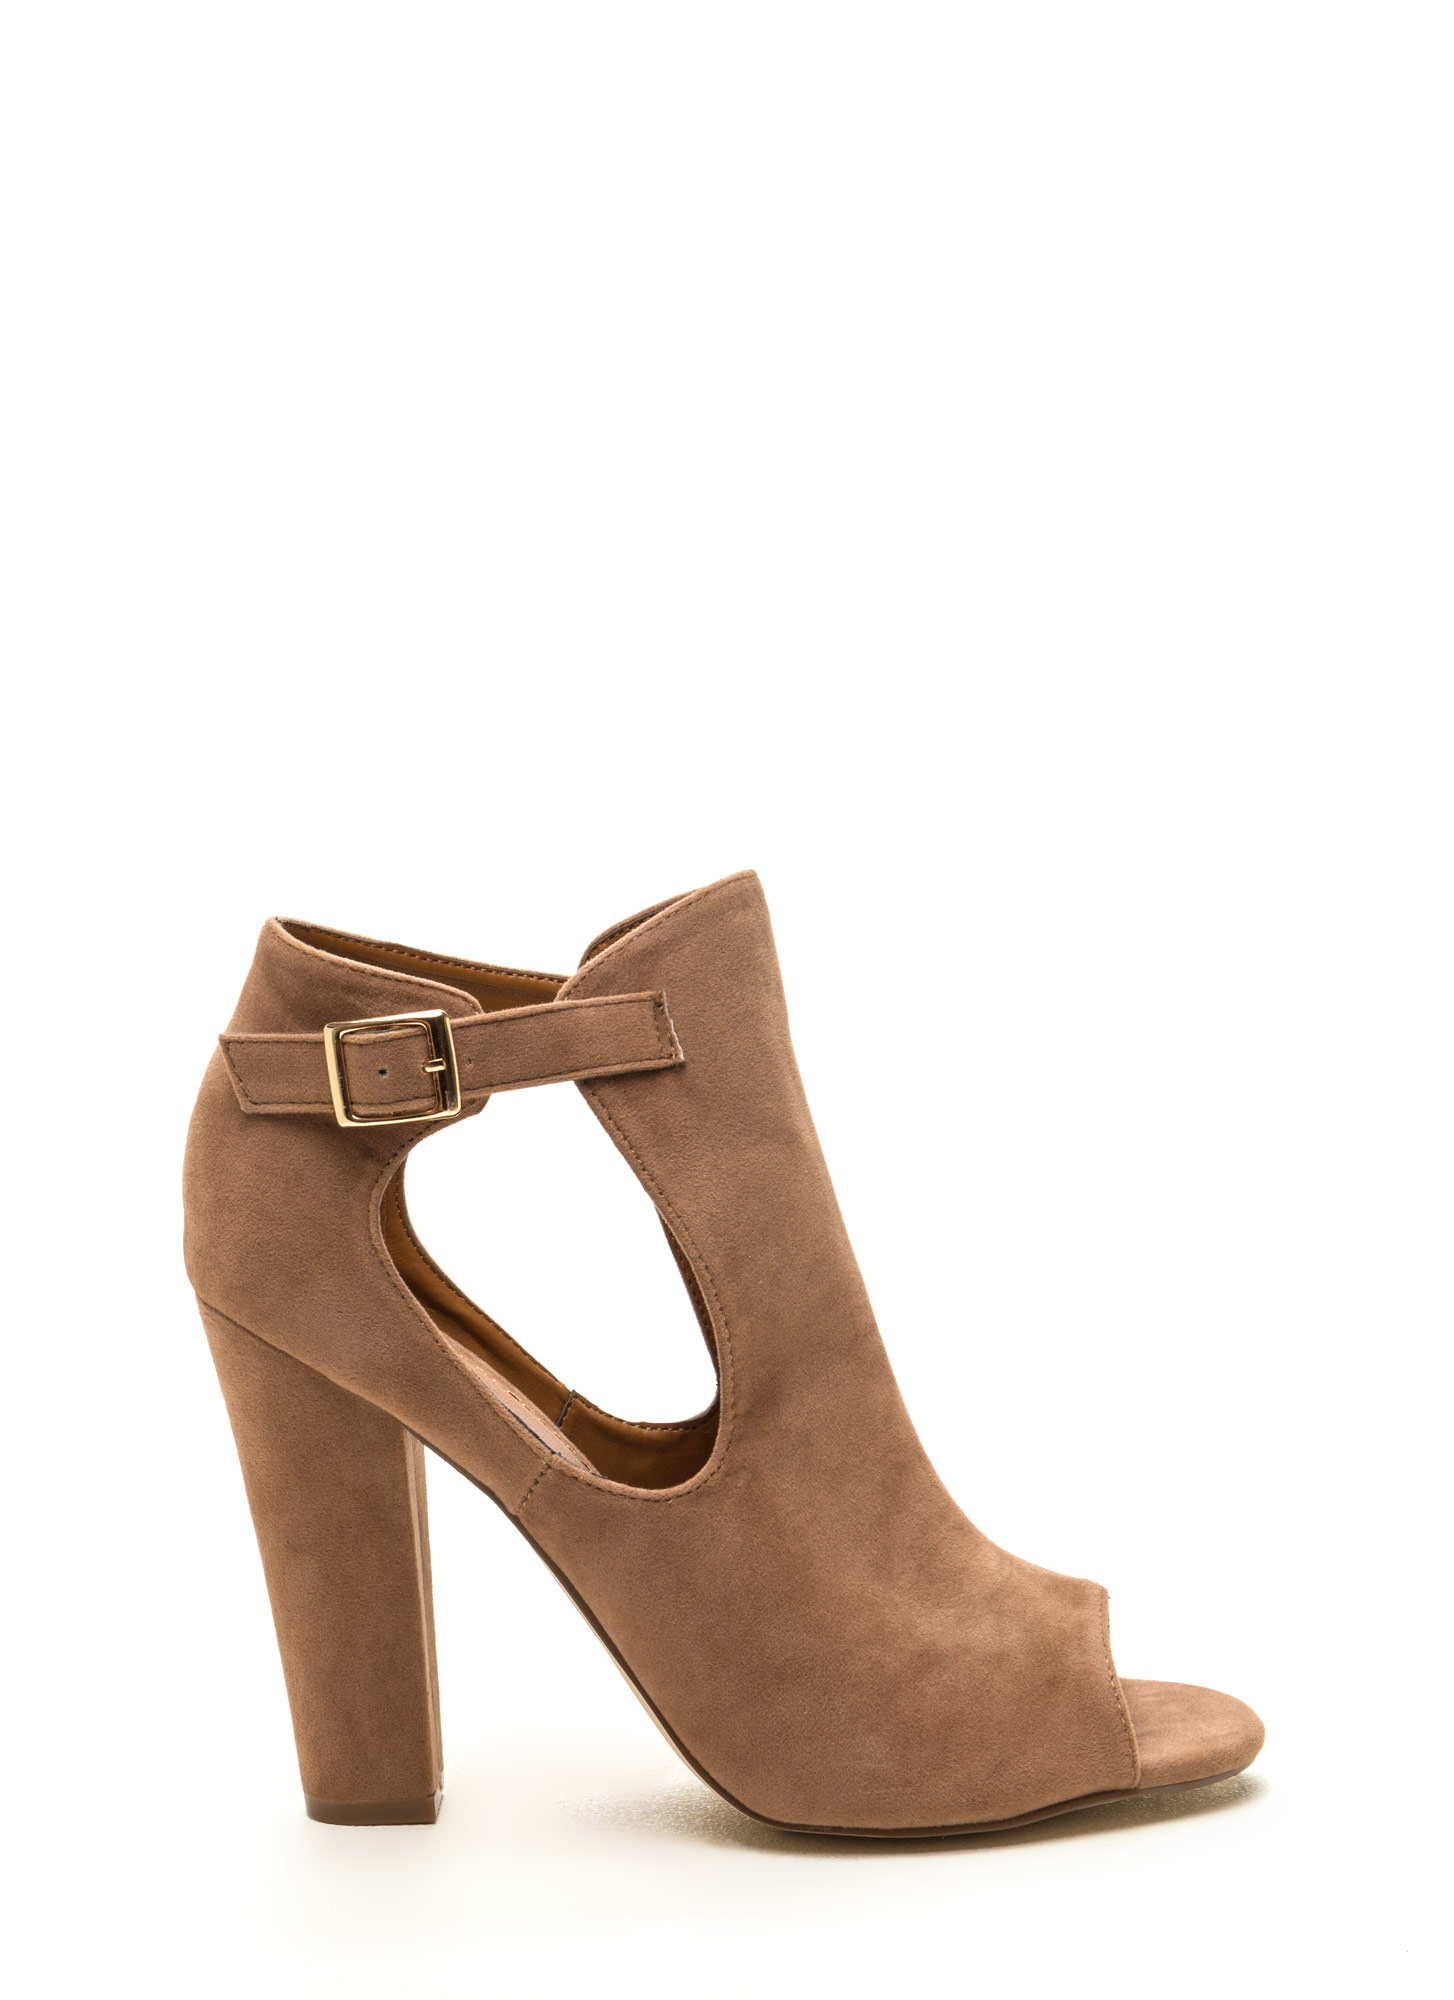 Secret Identity Cut-Out Booties  TAUPE